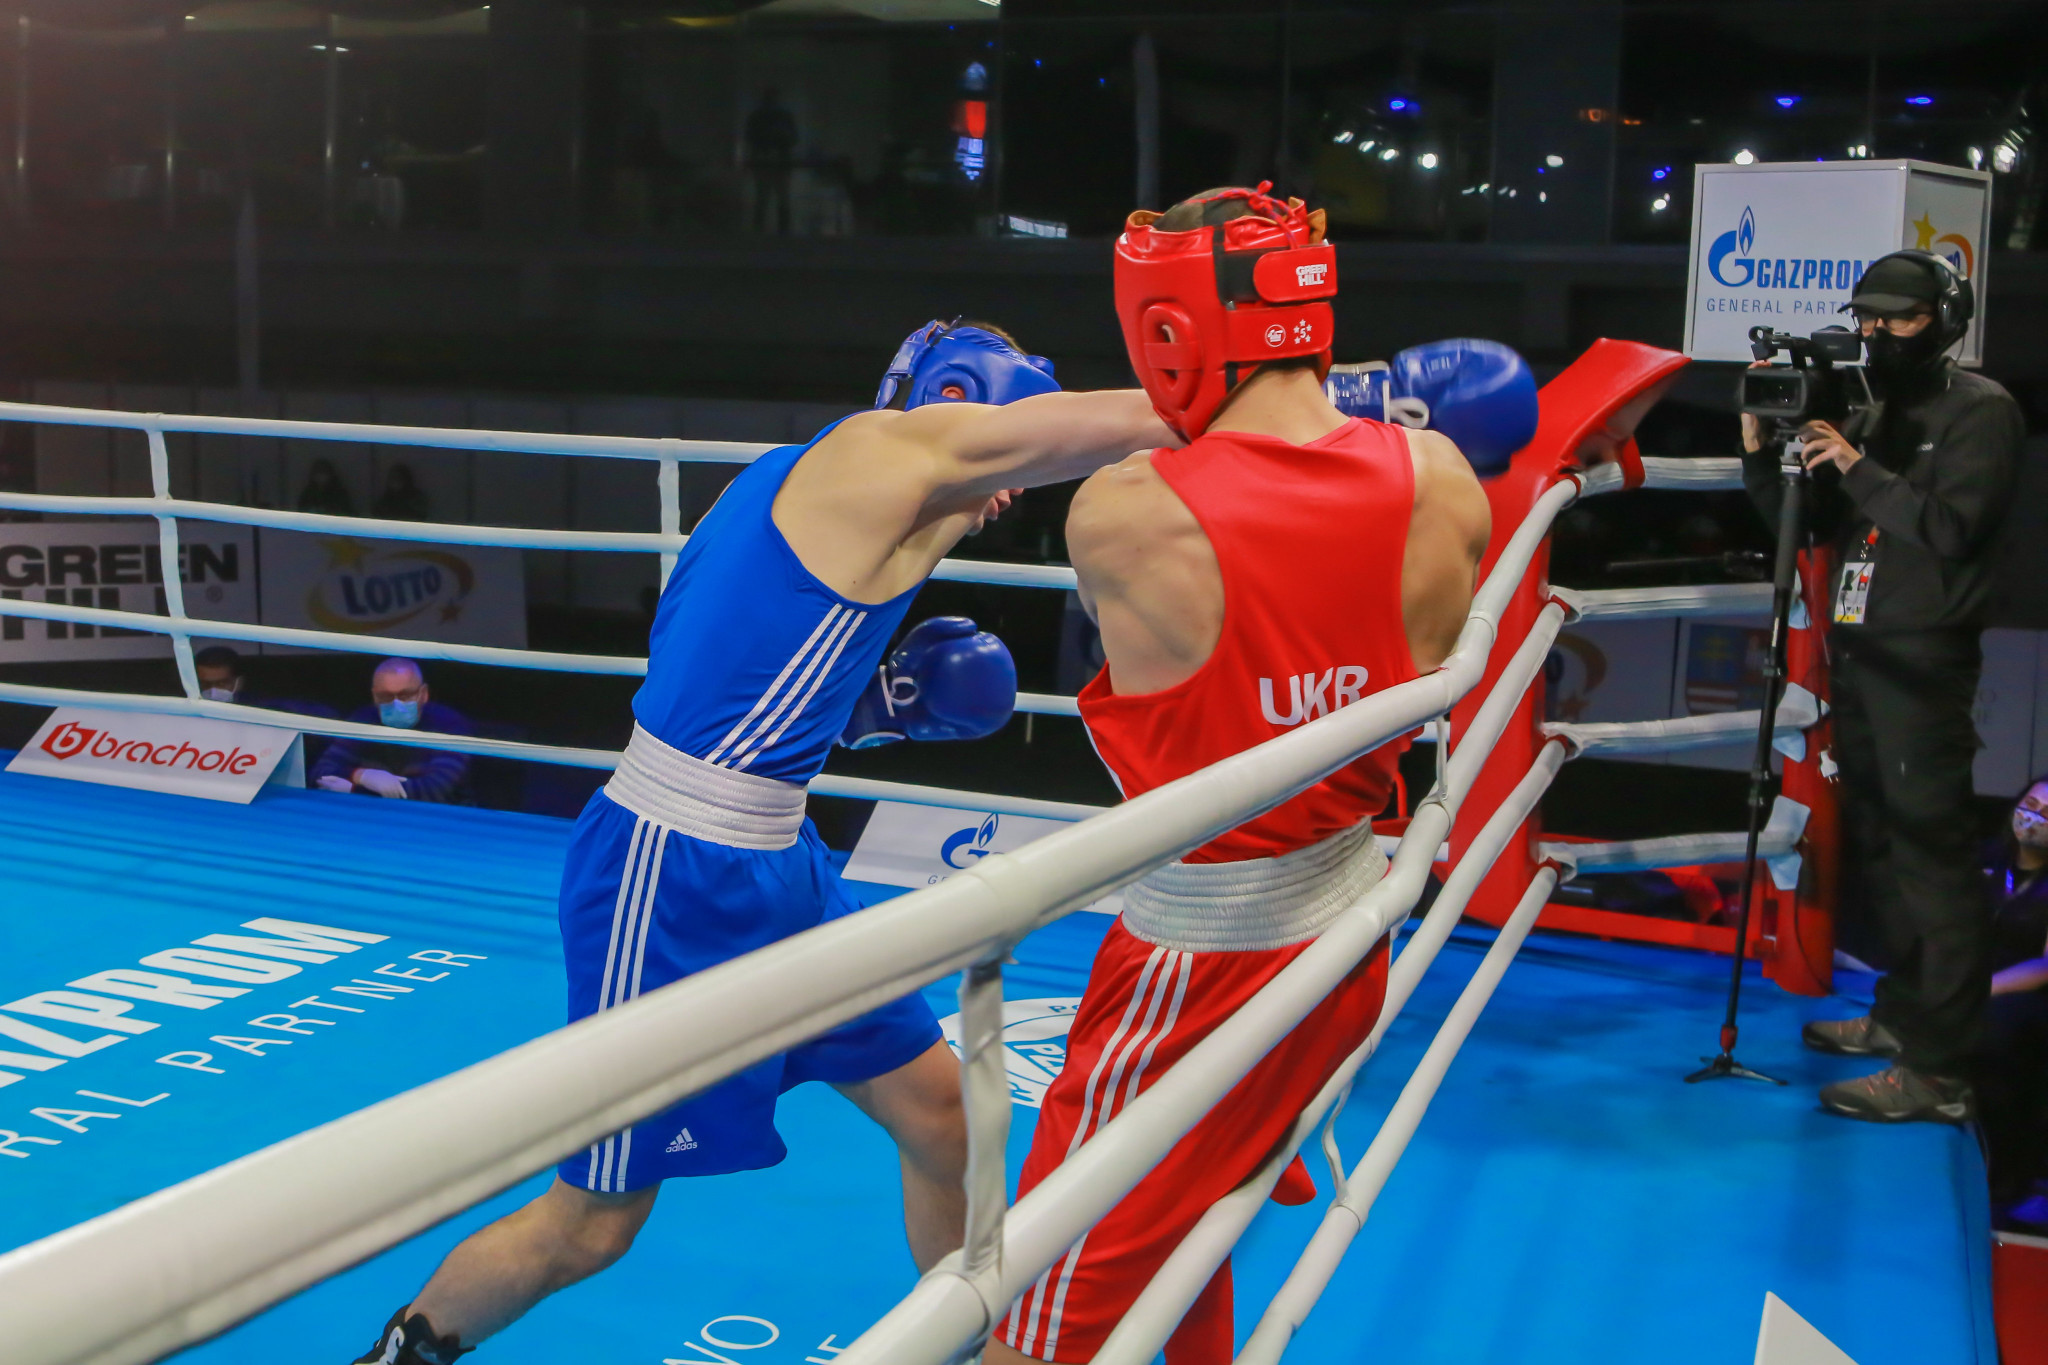 The fifth day of action saw plenty of exciting bouts take place across two rings in Kielce ©AIBA